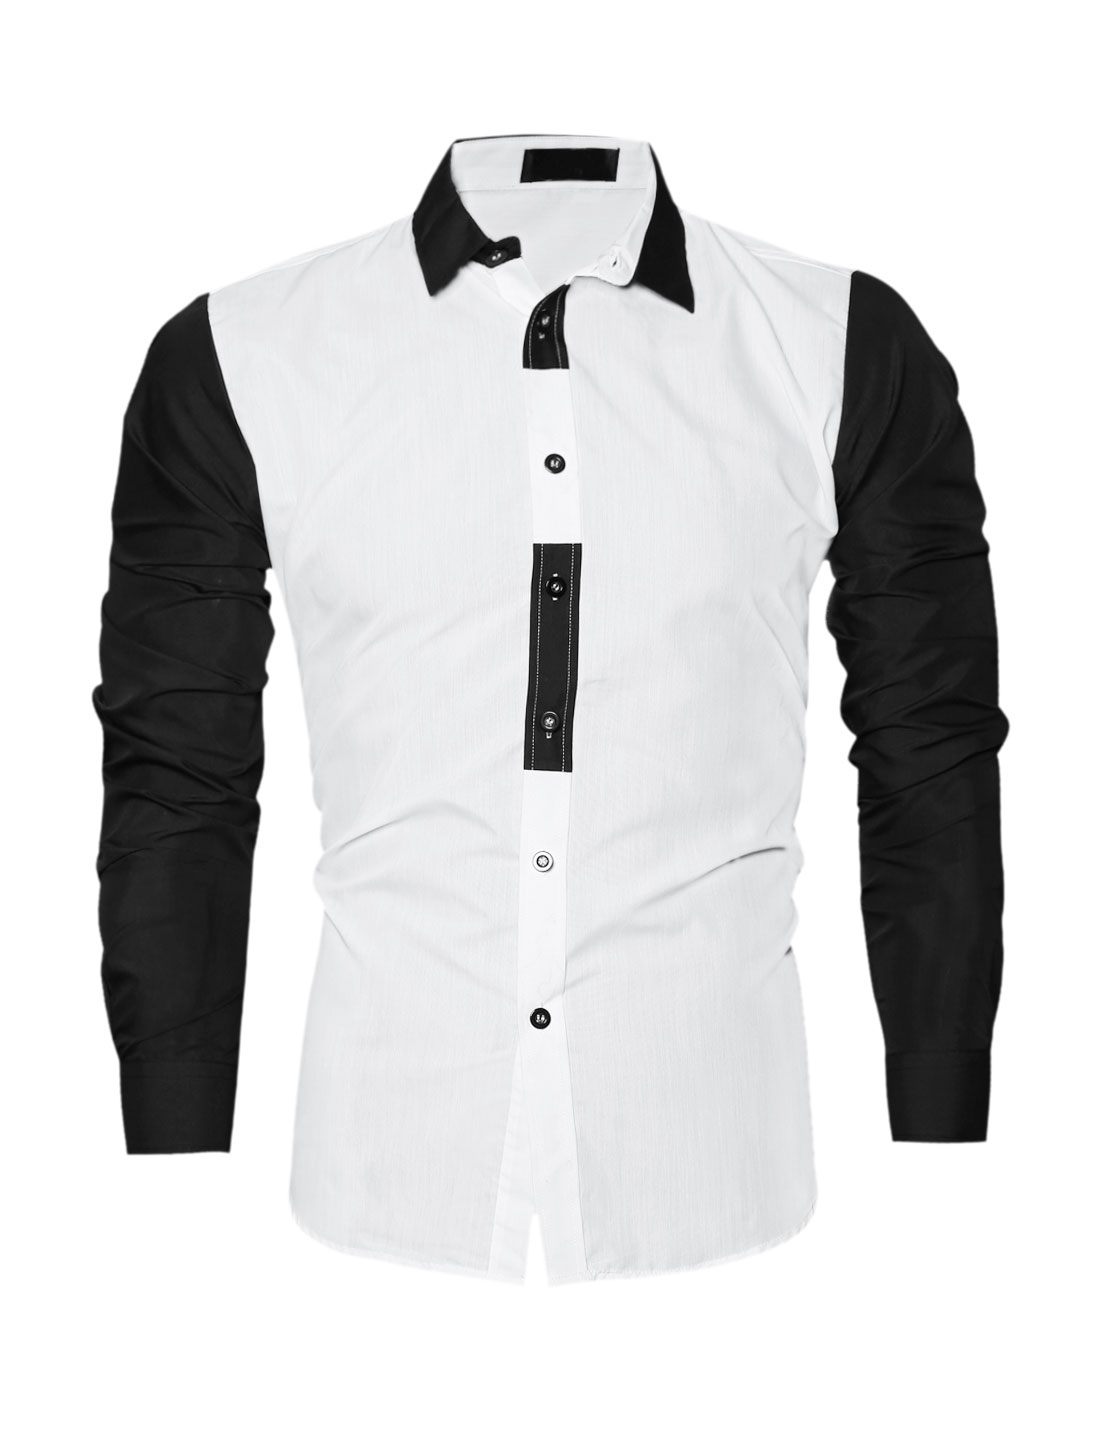 Men Collared Long Sleeves Color Block Slim Fit Shirt White M